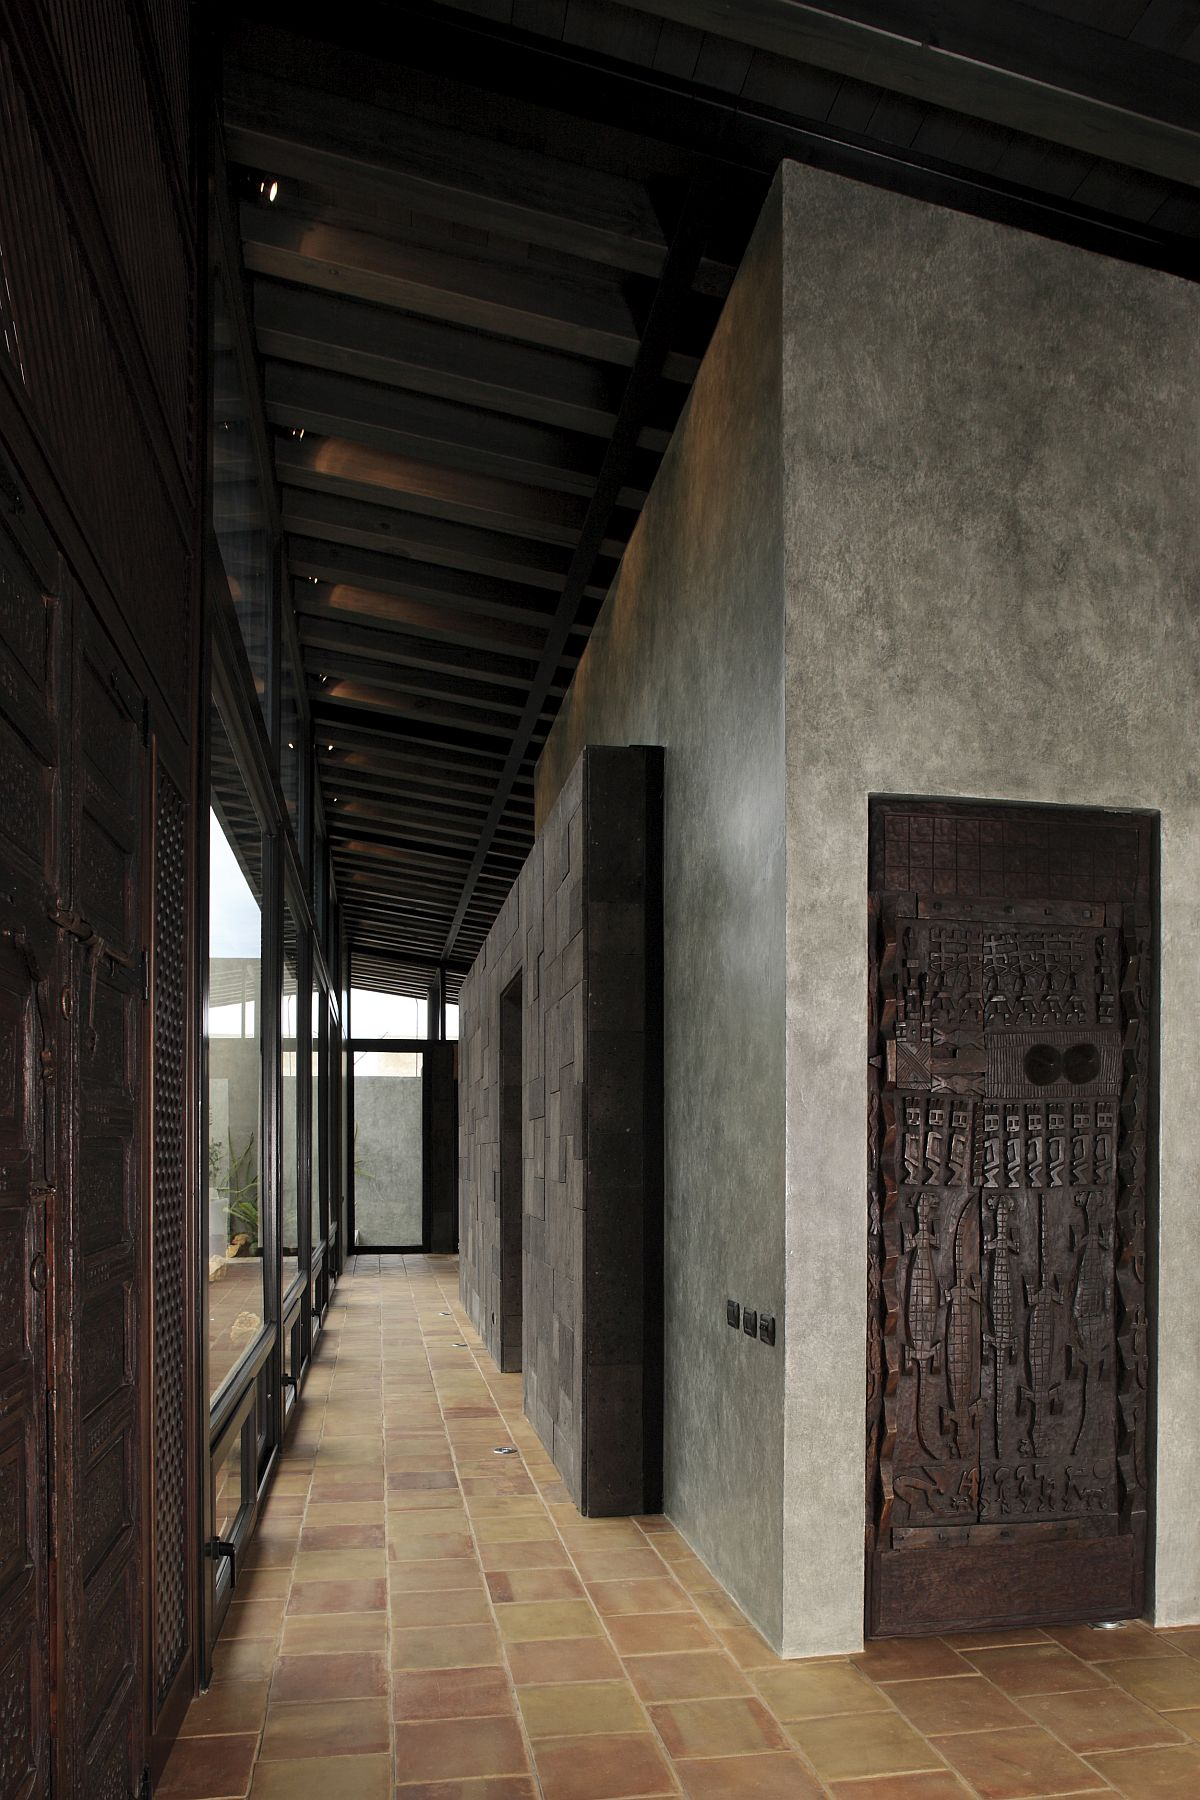 Unique woodwork and doors bring vernacular Mexican charm to the interior